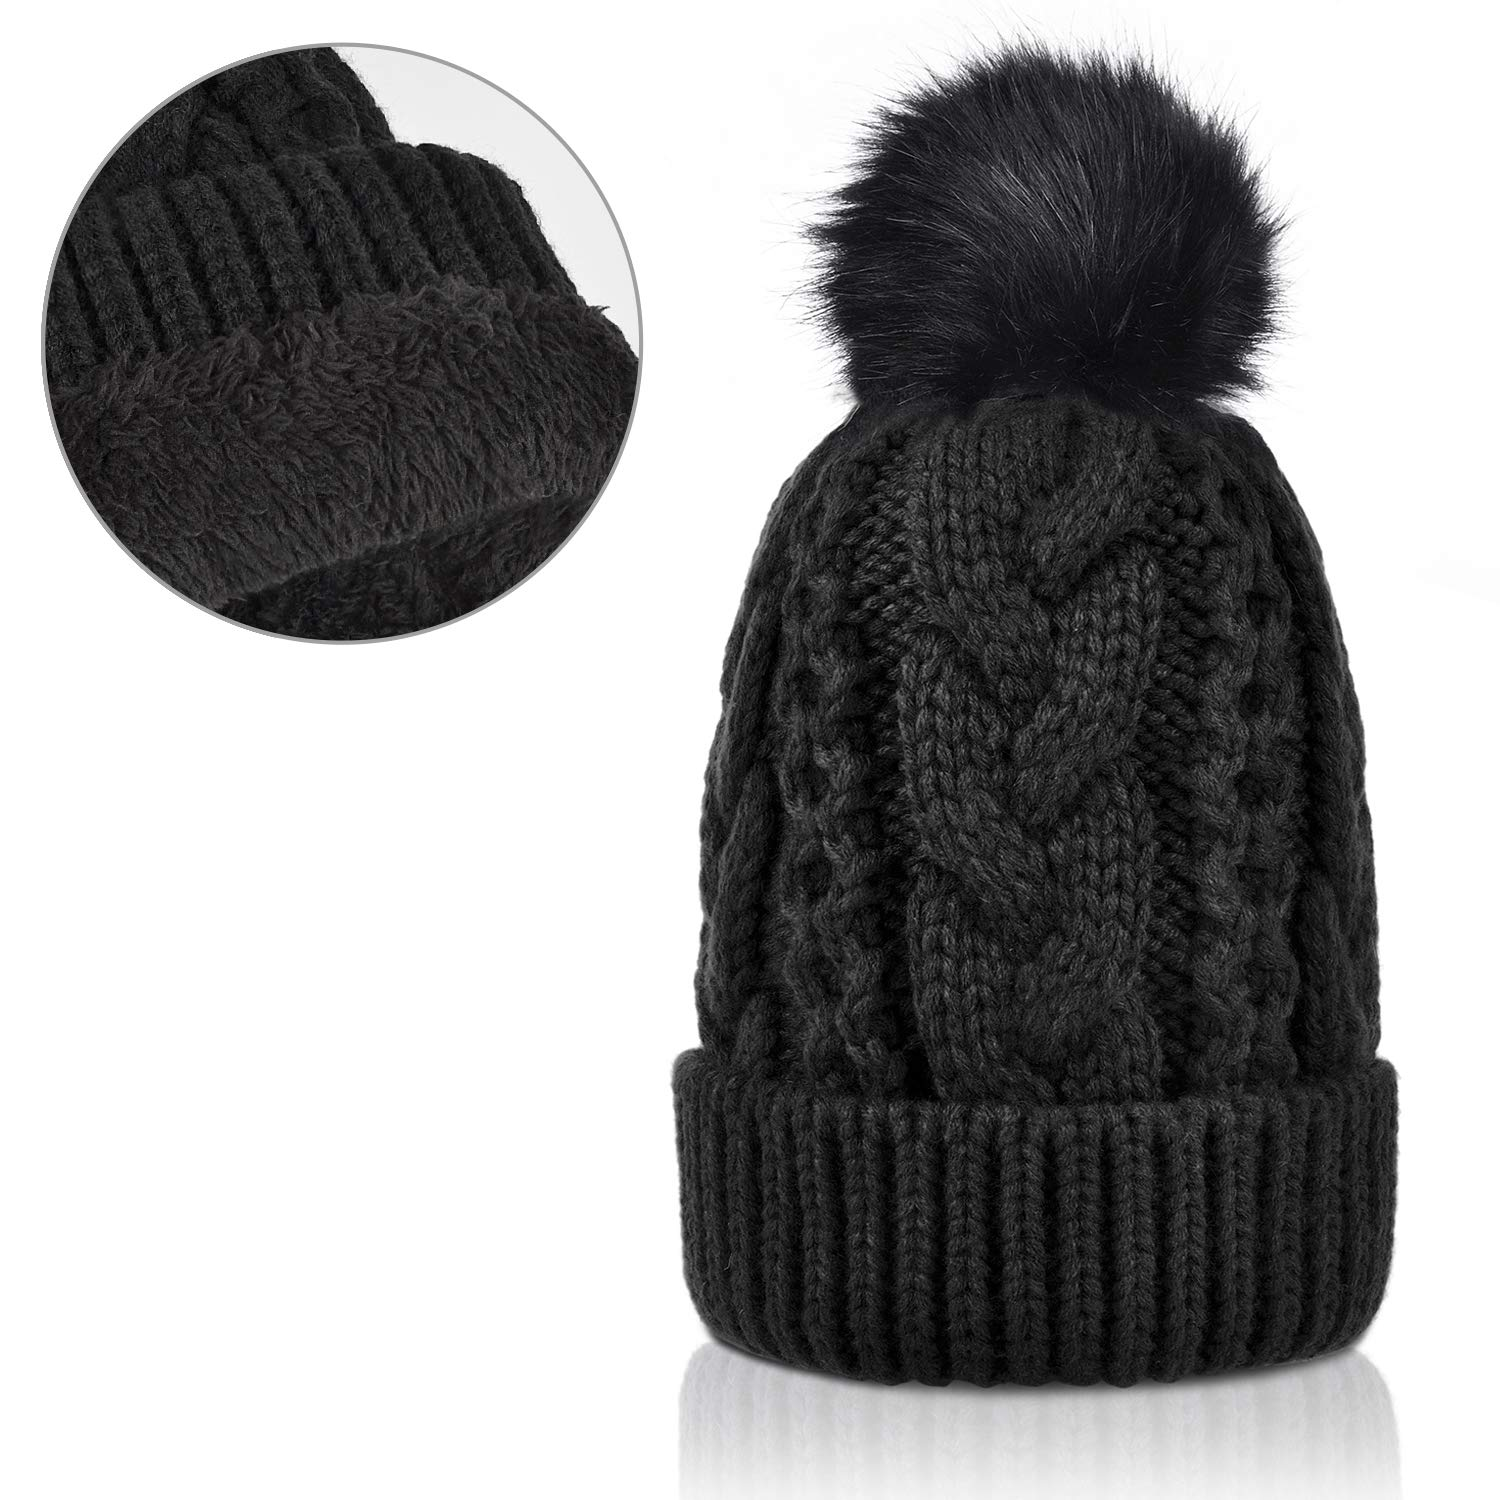 4d87425ef33 Winter Thick Cable Knit Faux Fuzzy Fur Pom Pom Sherpa Lined Skull Ski Cap  Cuff Beanie Black at Amazon Women s Clothing store